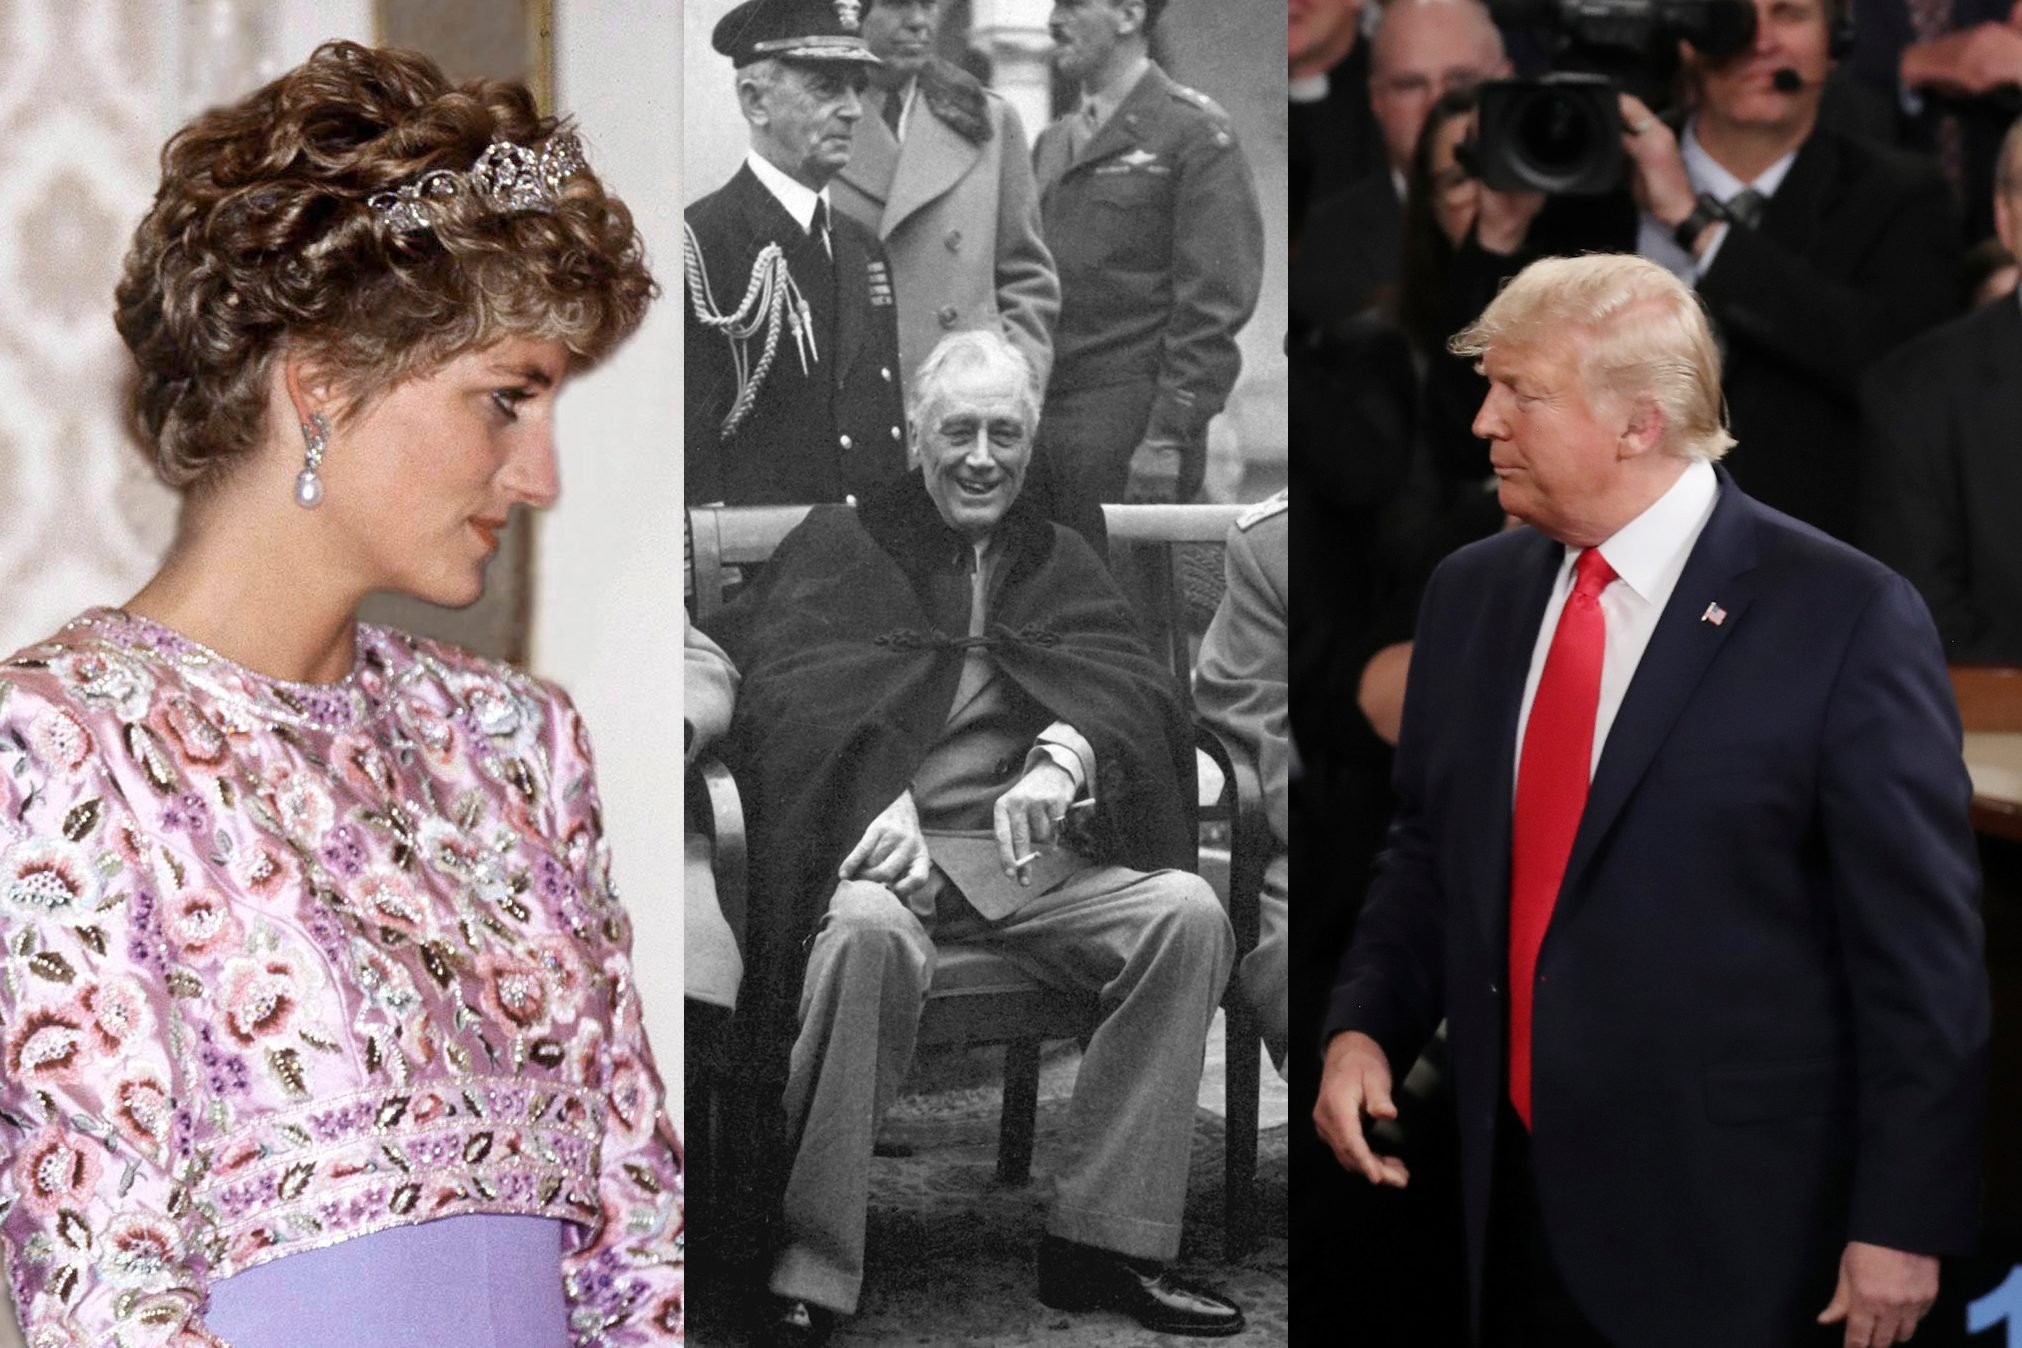 A Body Language Expert Weighs in on 11 Iconic Photos